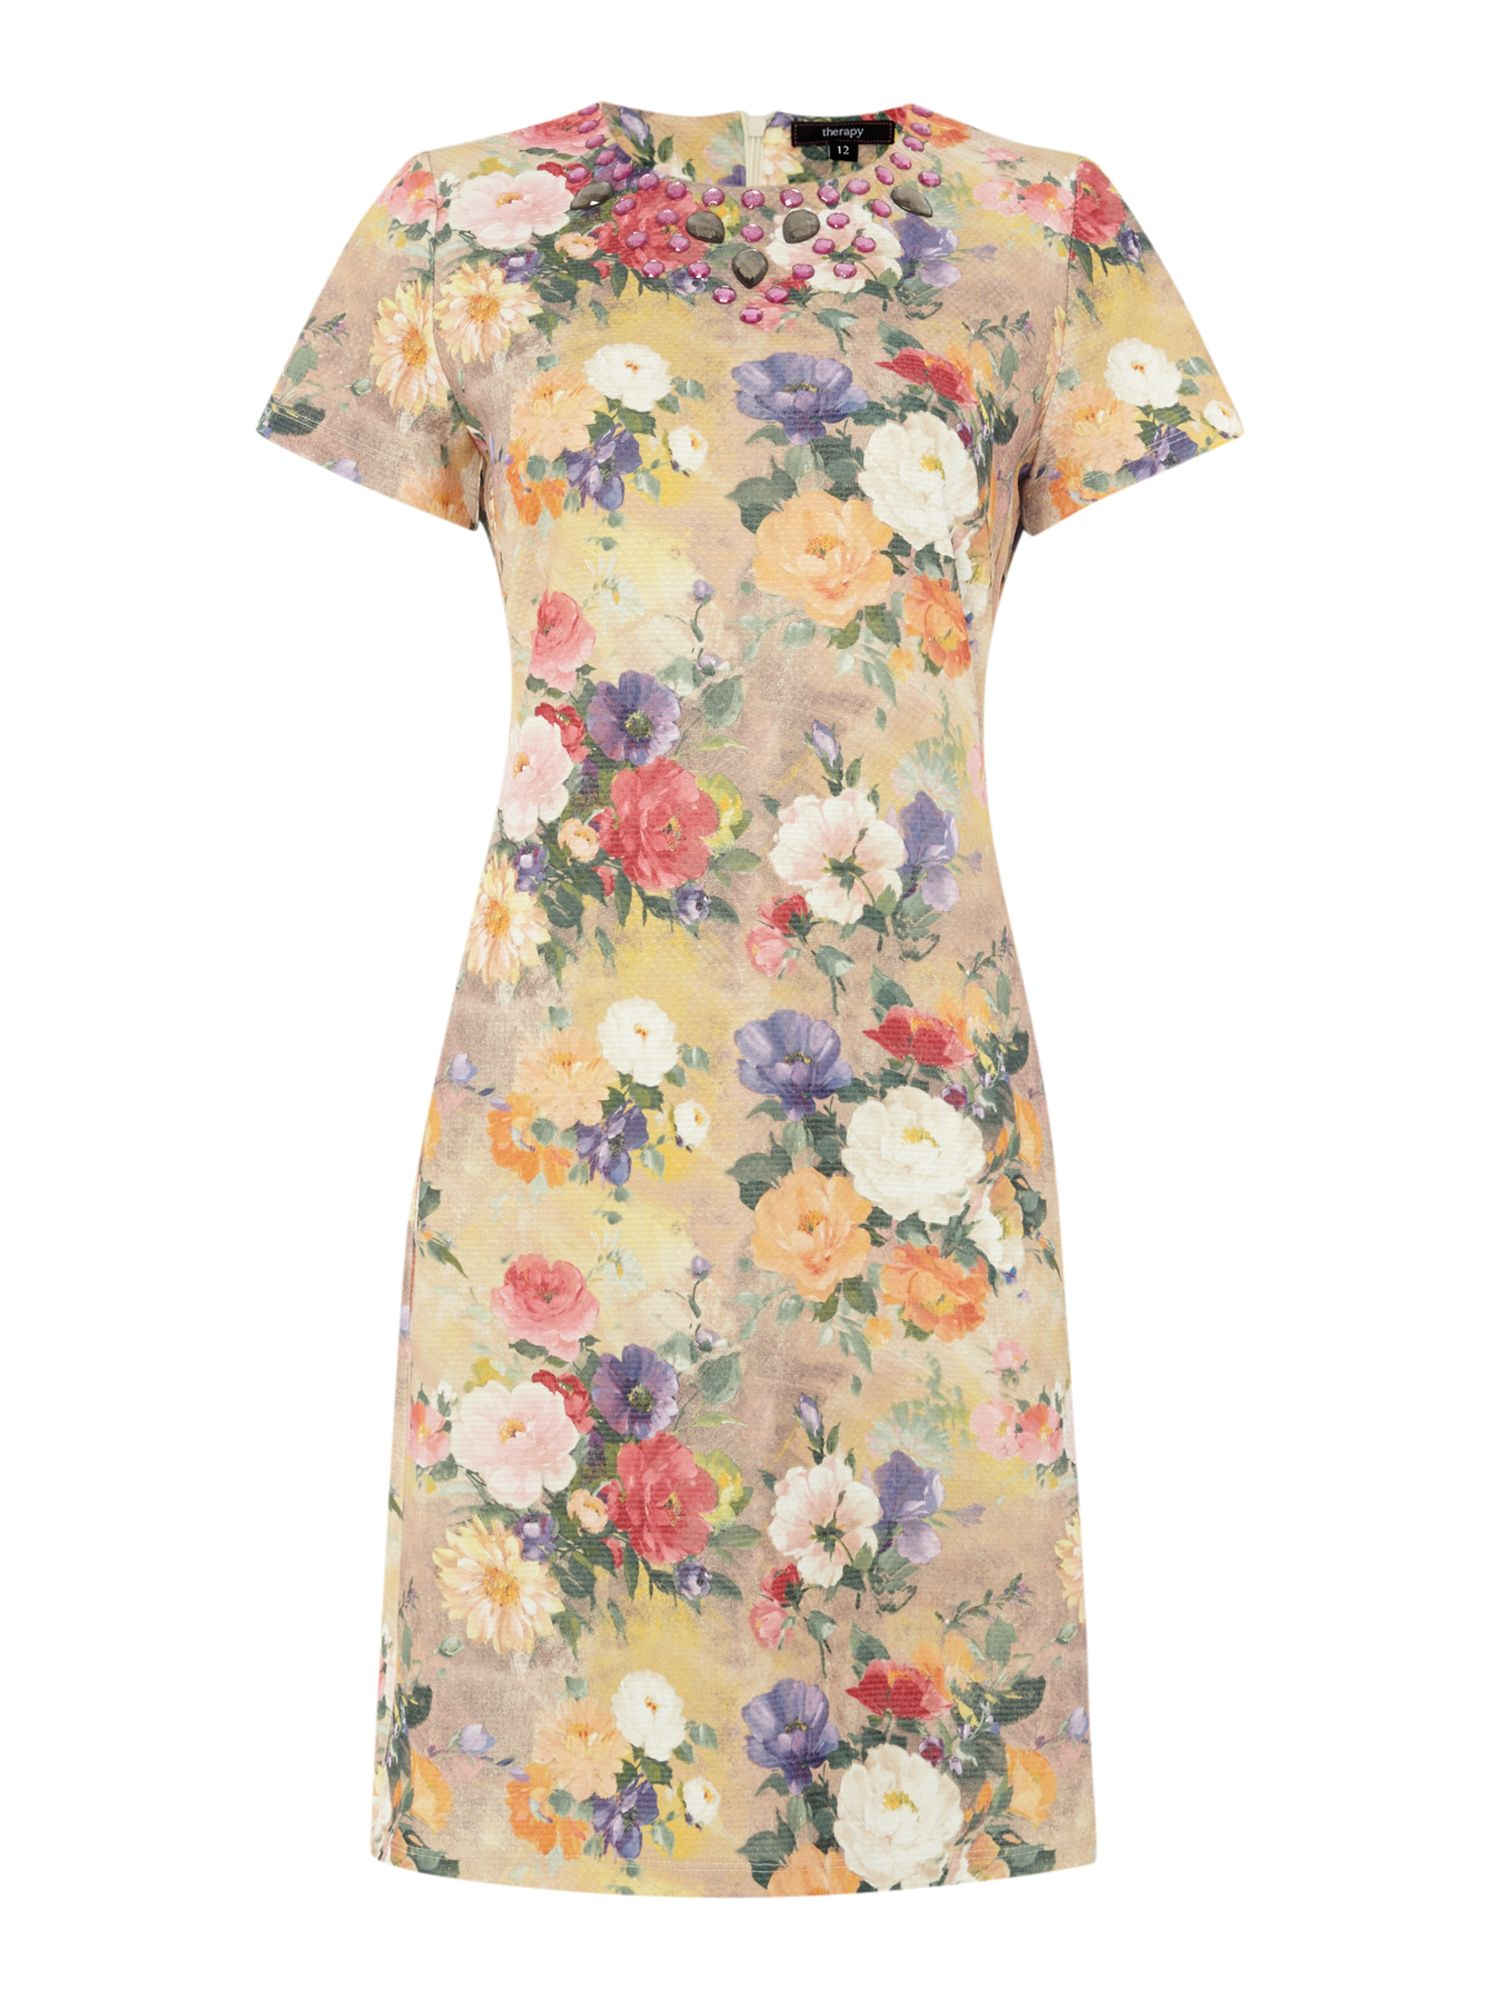 Floral print dress with necklace